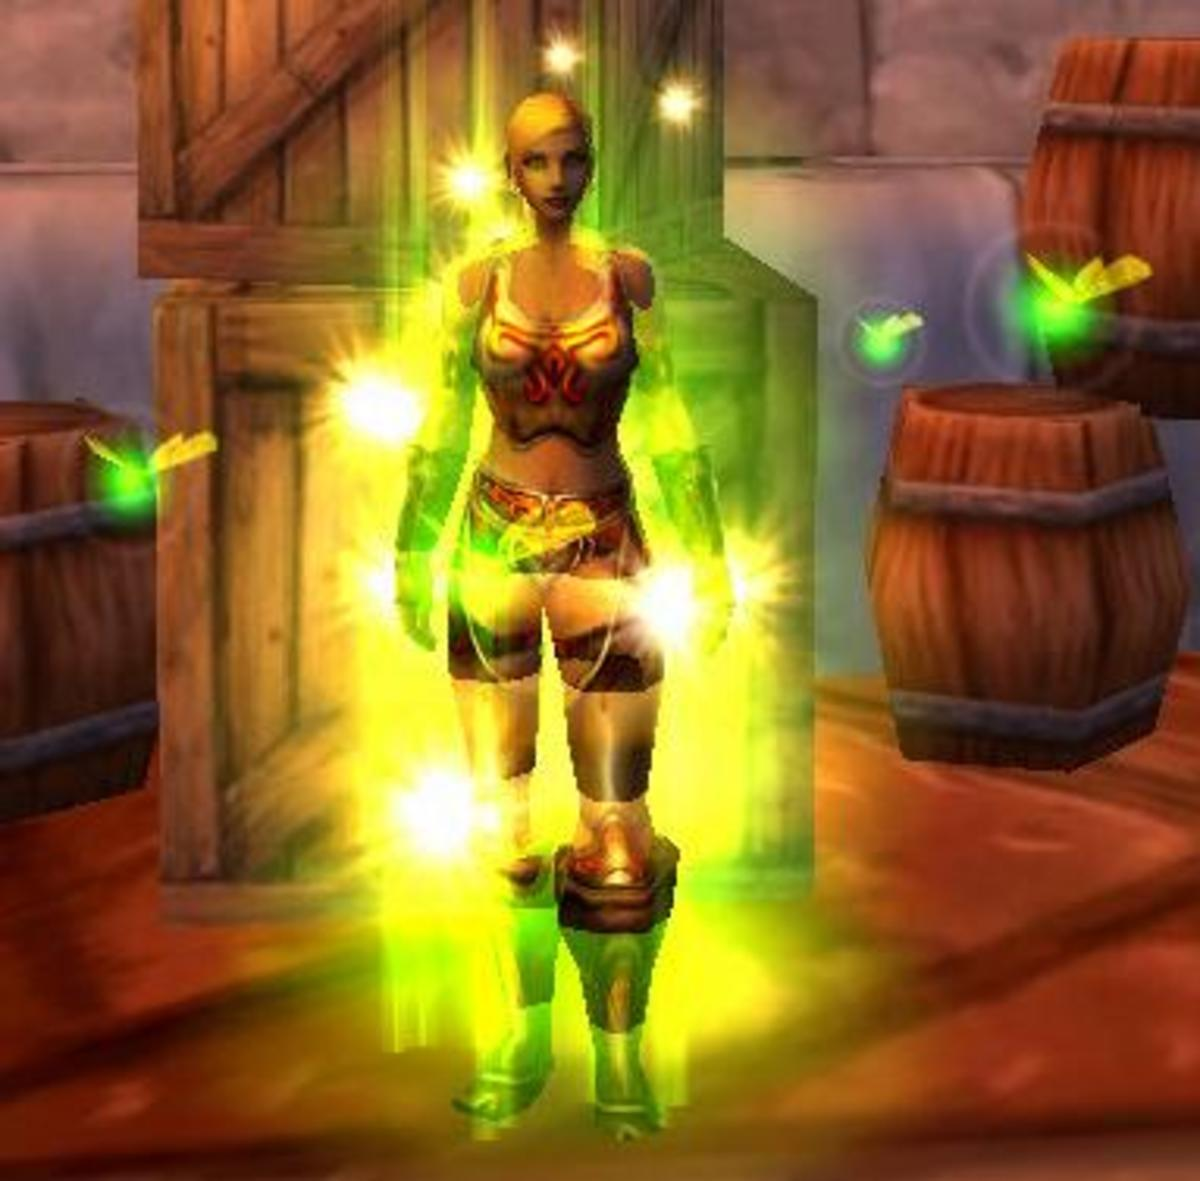 Paladin + Armour set + Druid = Unique shot